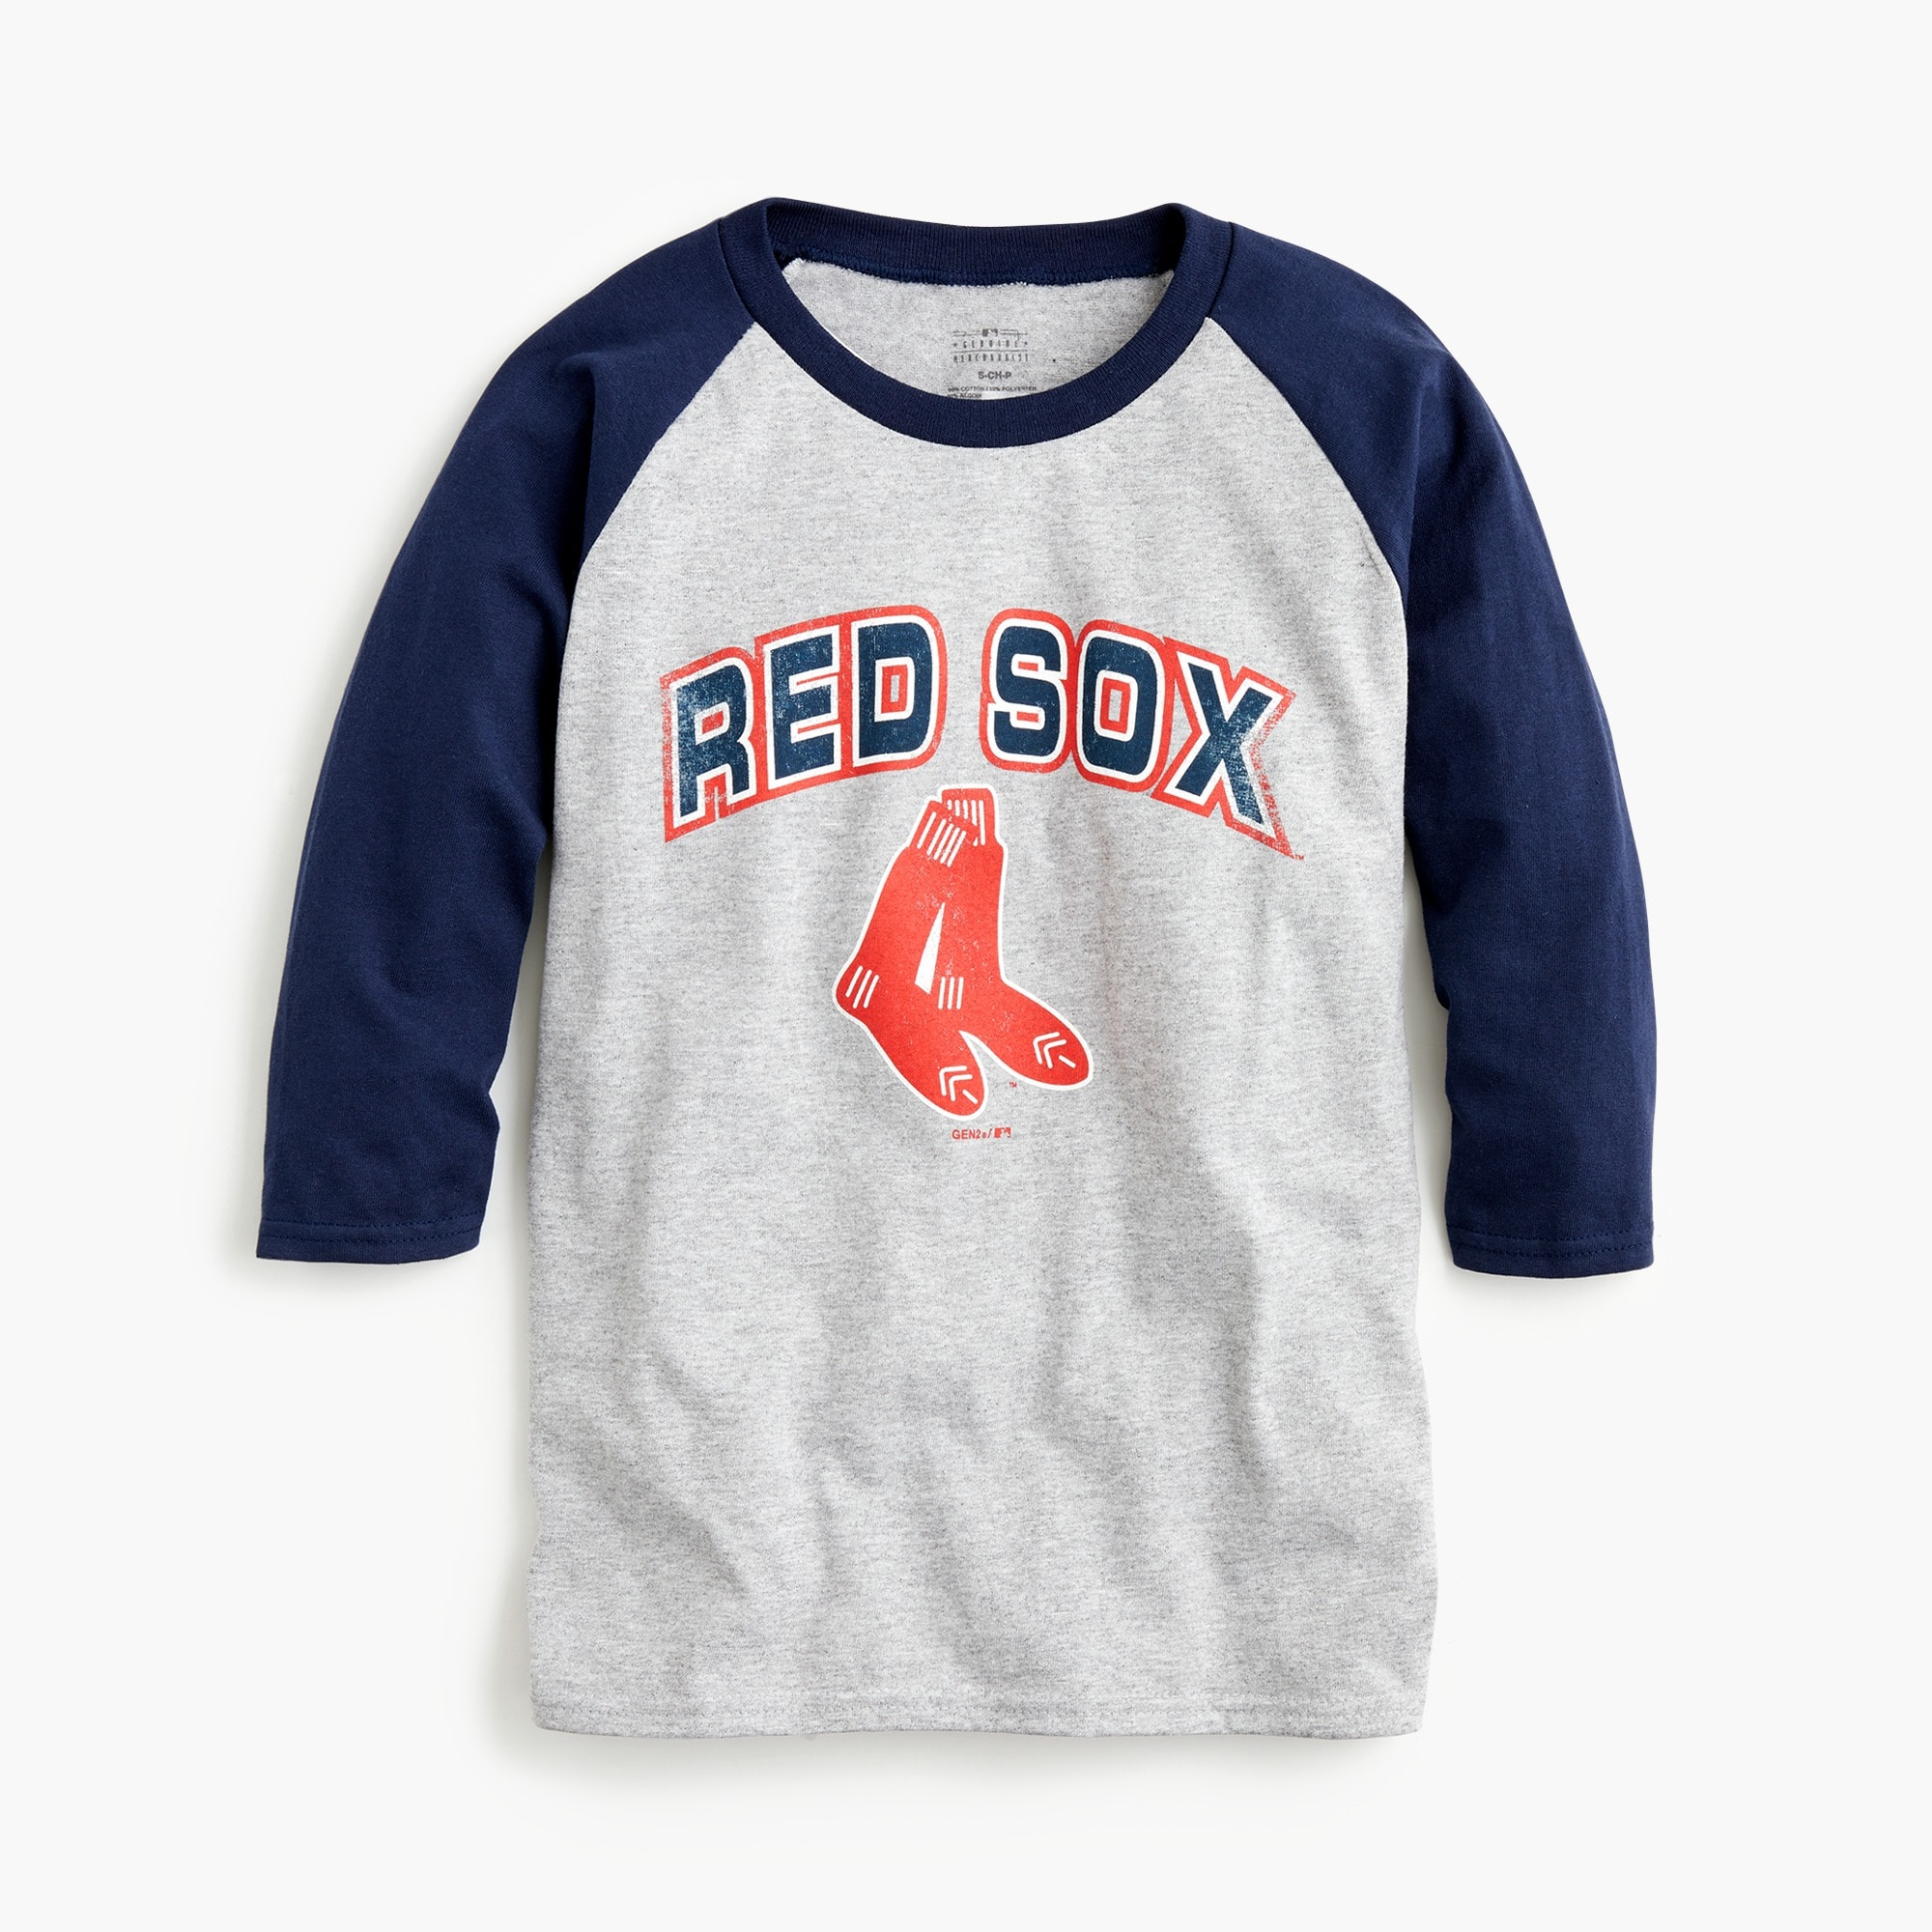 Kids' Boston Red Sox baseball T-shirt boy graphics shop c